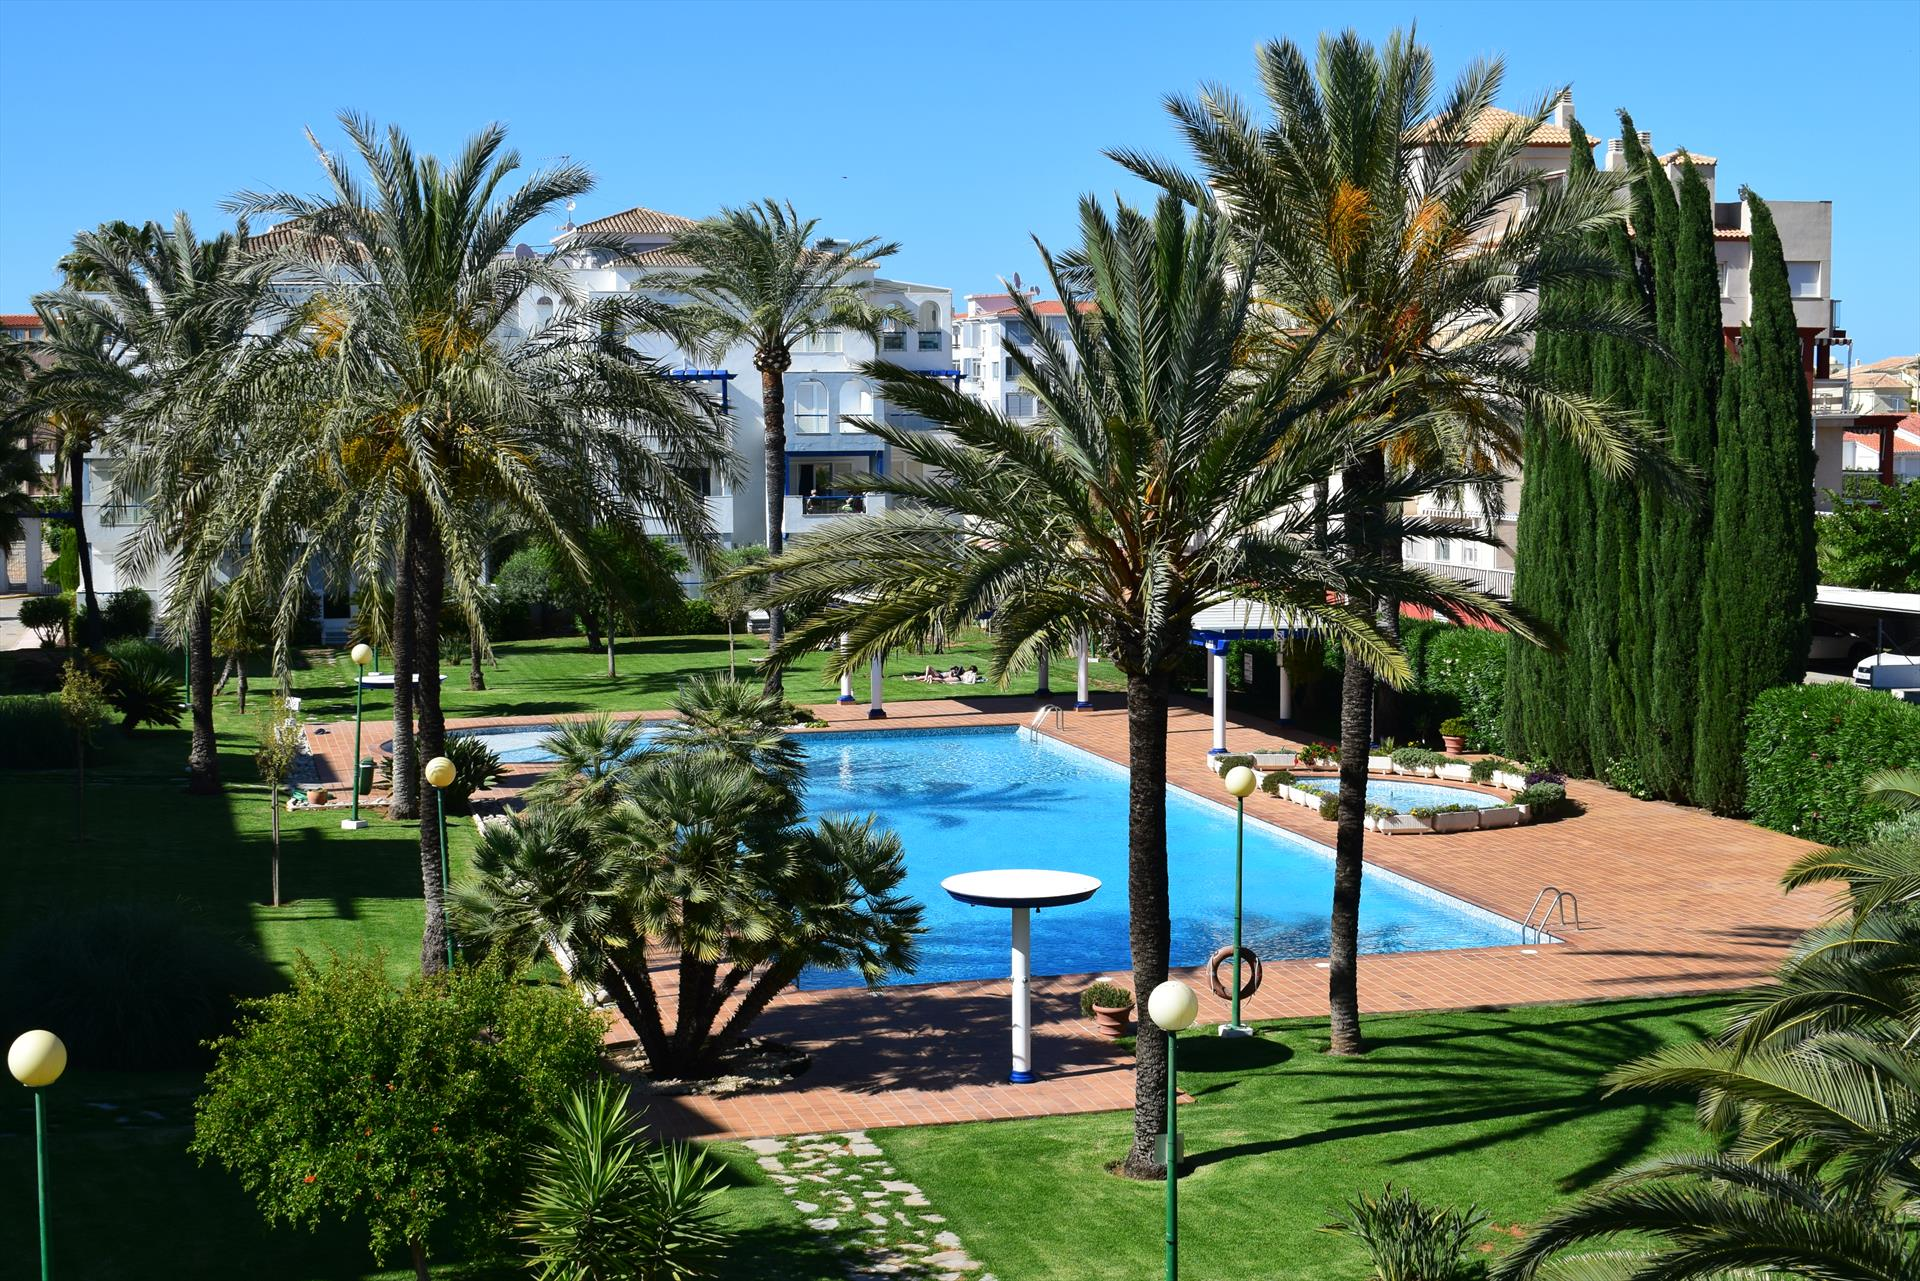 AP1110 Con piscina a 100m de la Playa, Rustic and classic apartment in Denia, on the Costa Blanca, Spain  with communal pool for 4 persons.....